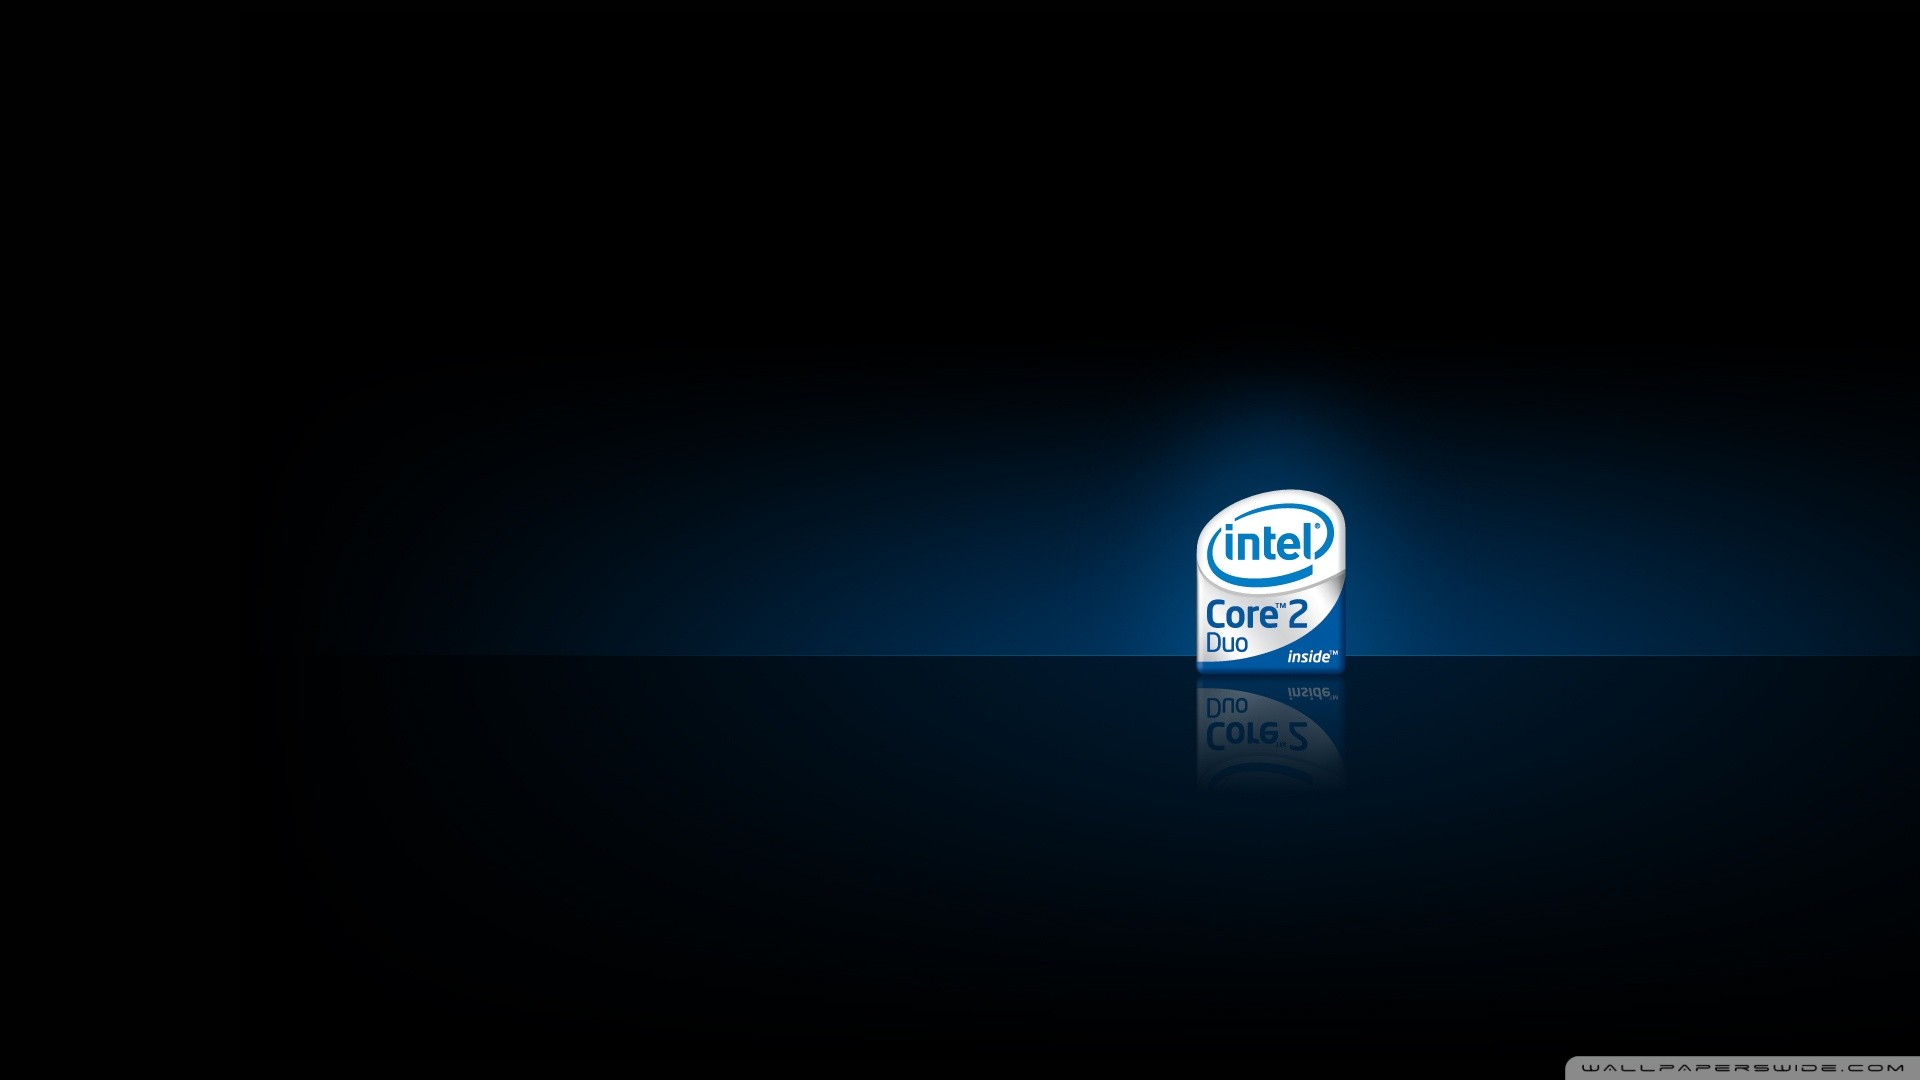 intel wallpaper 1920x1080 hd 77 images